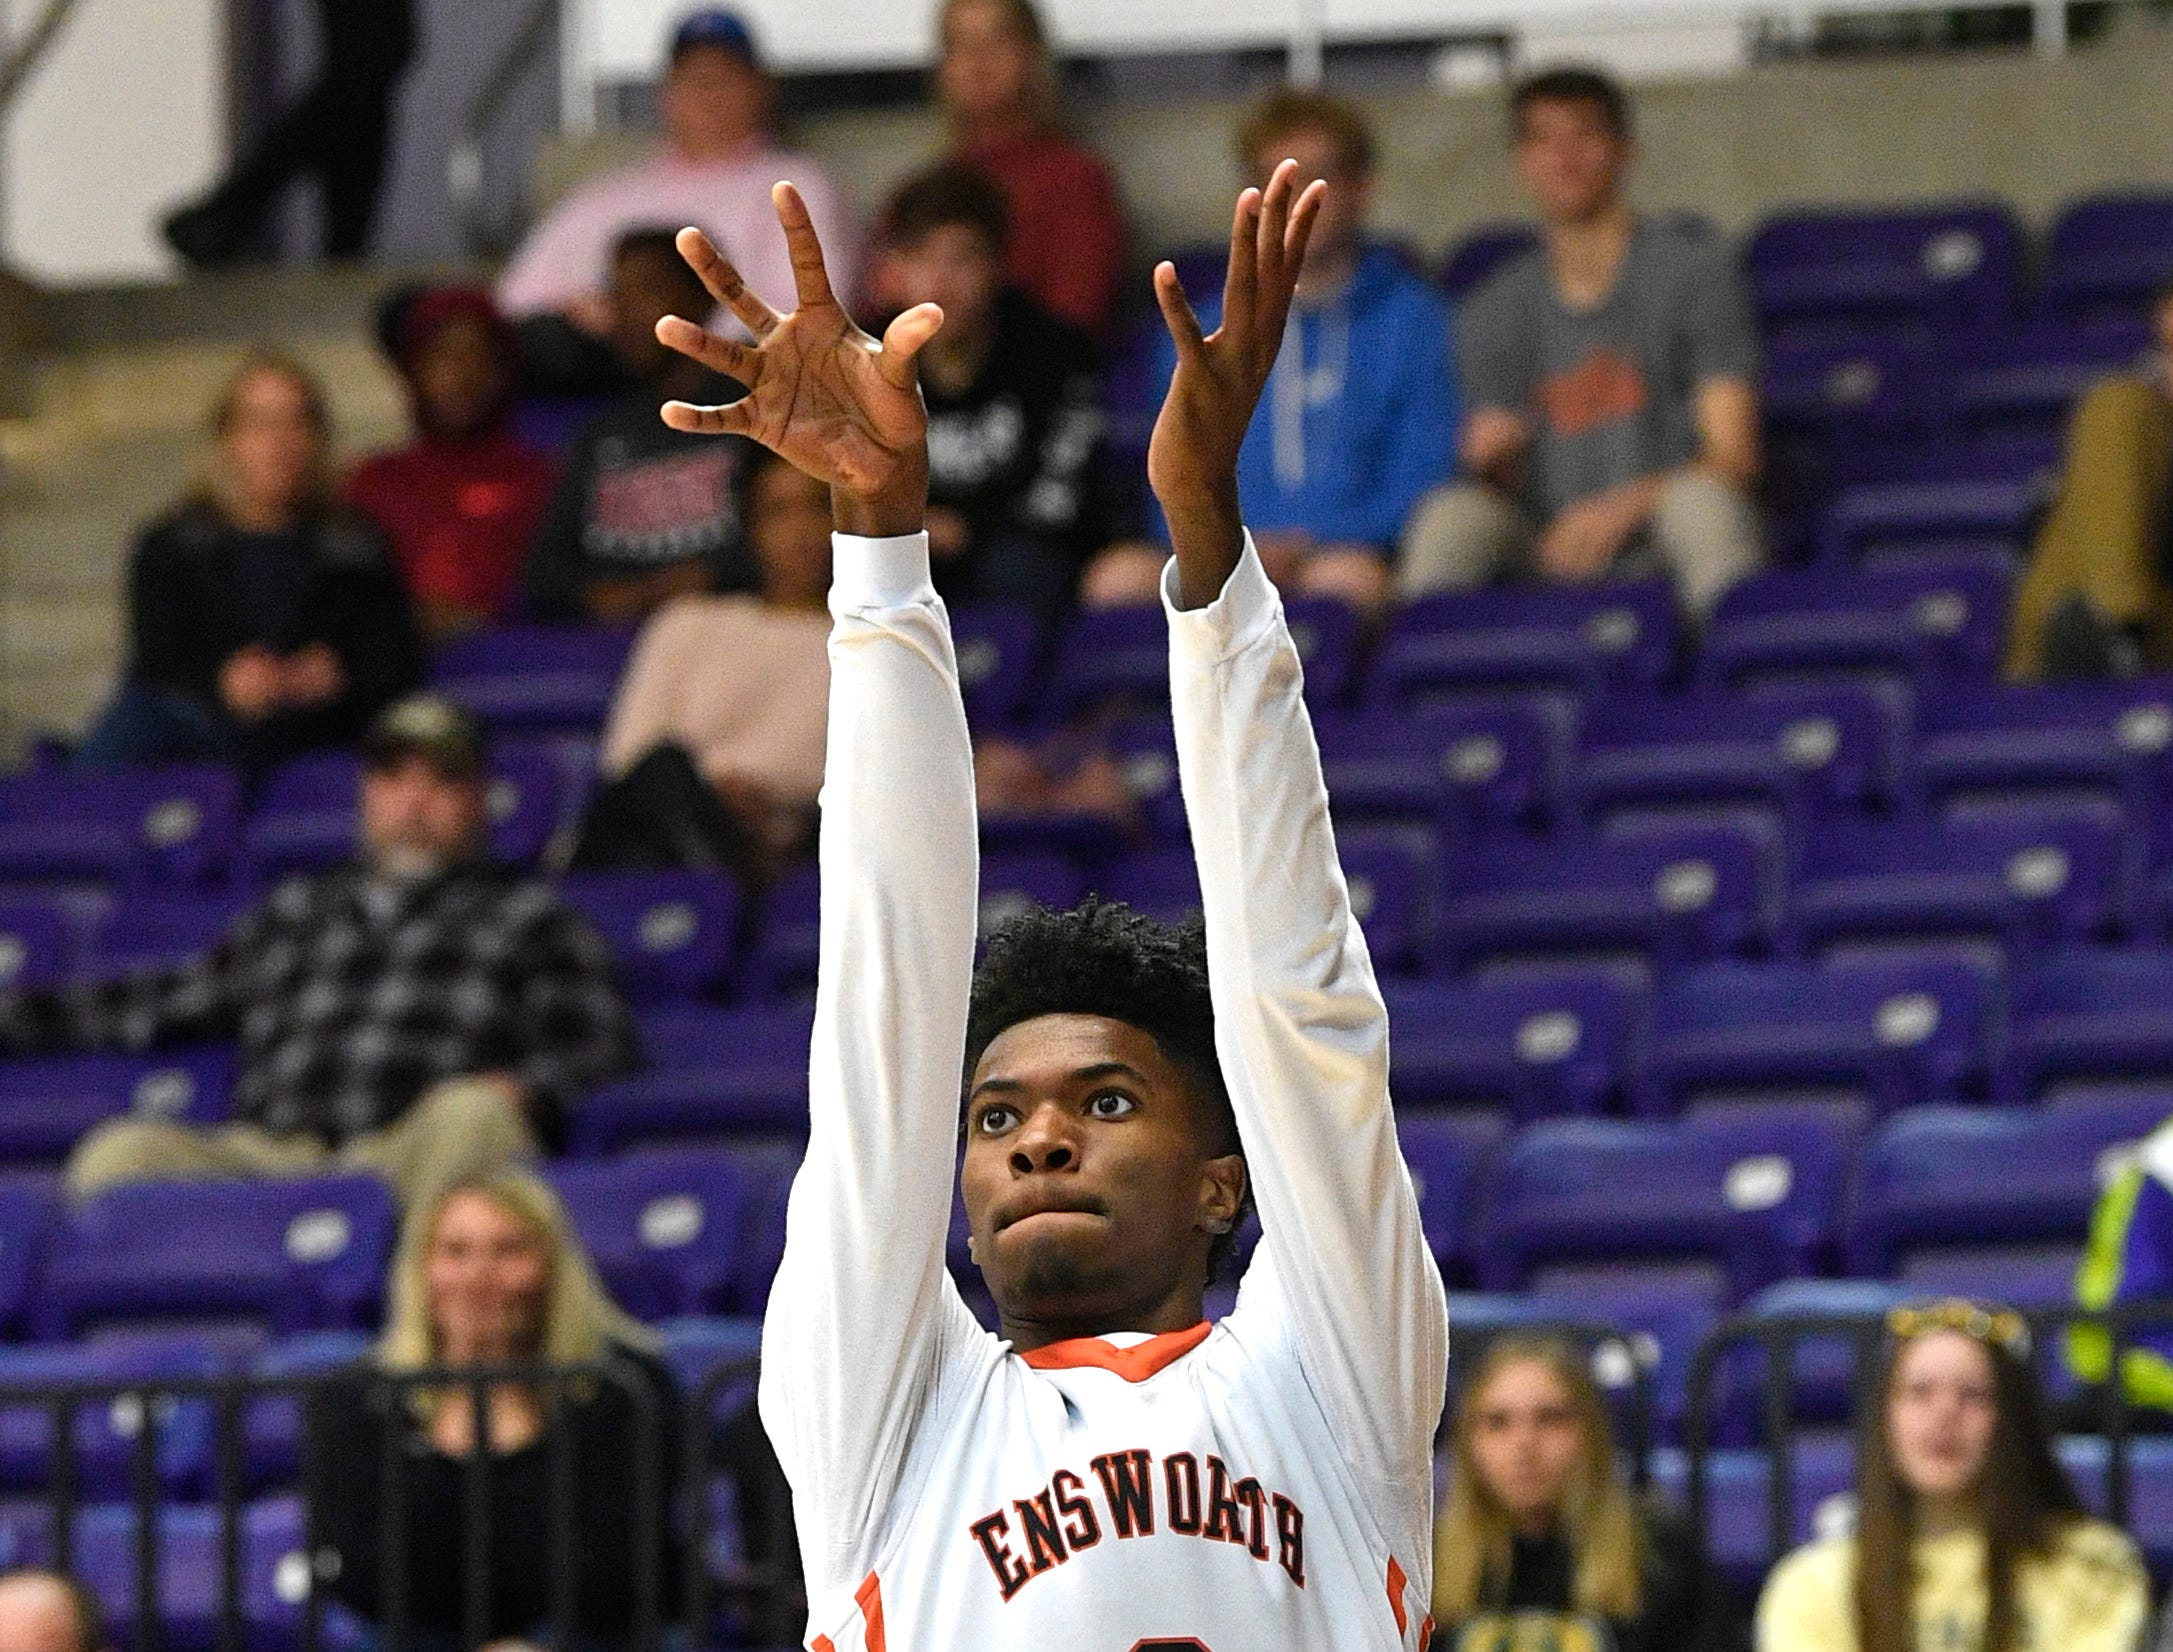 Keyshawn Collier takes the shot as Ensworth plays Briarcrest Christian in the Division II- AA semifinals at Allen Arena  Thursday, Feb. 28, 2019, in Nashville, Tenn.